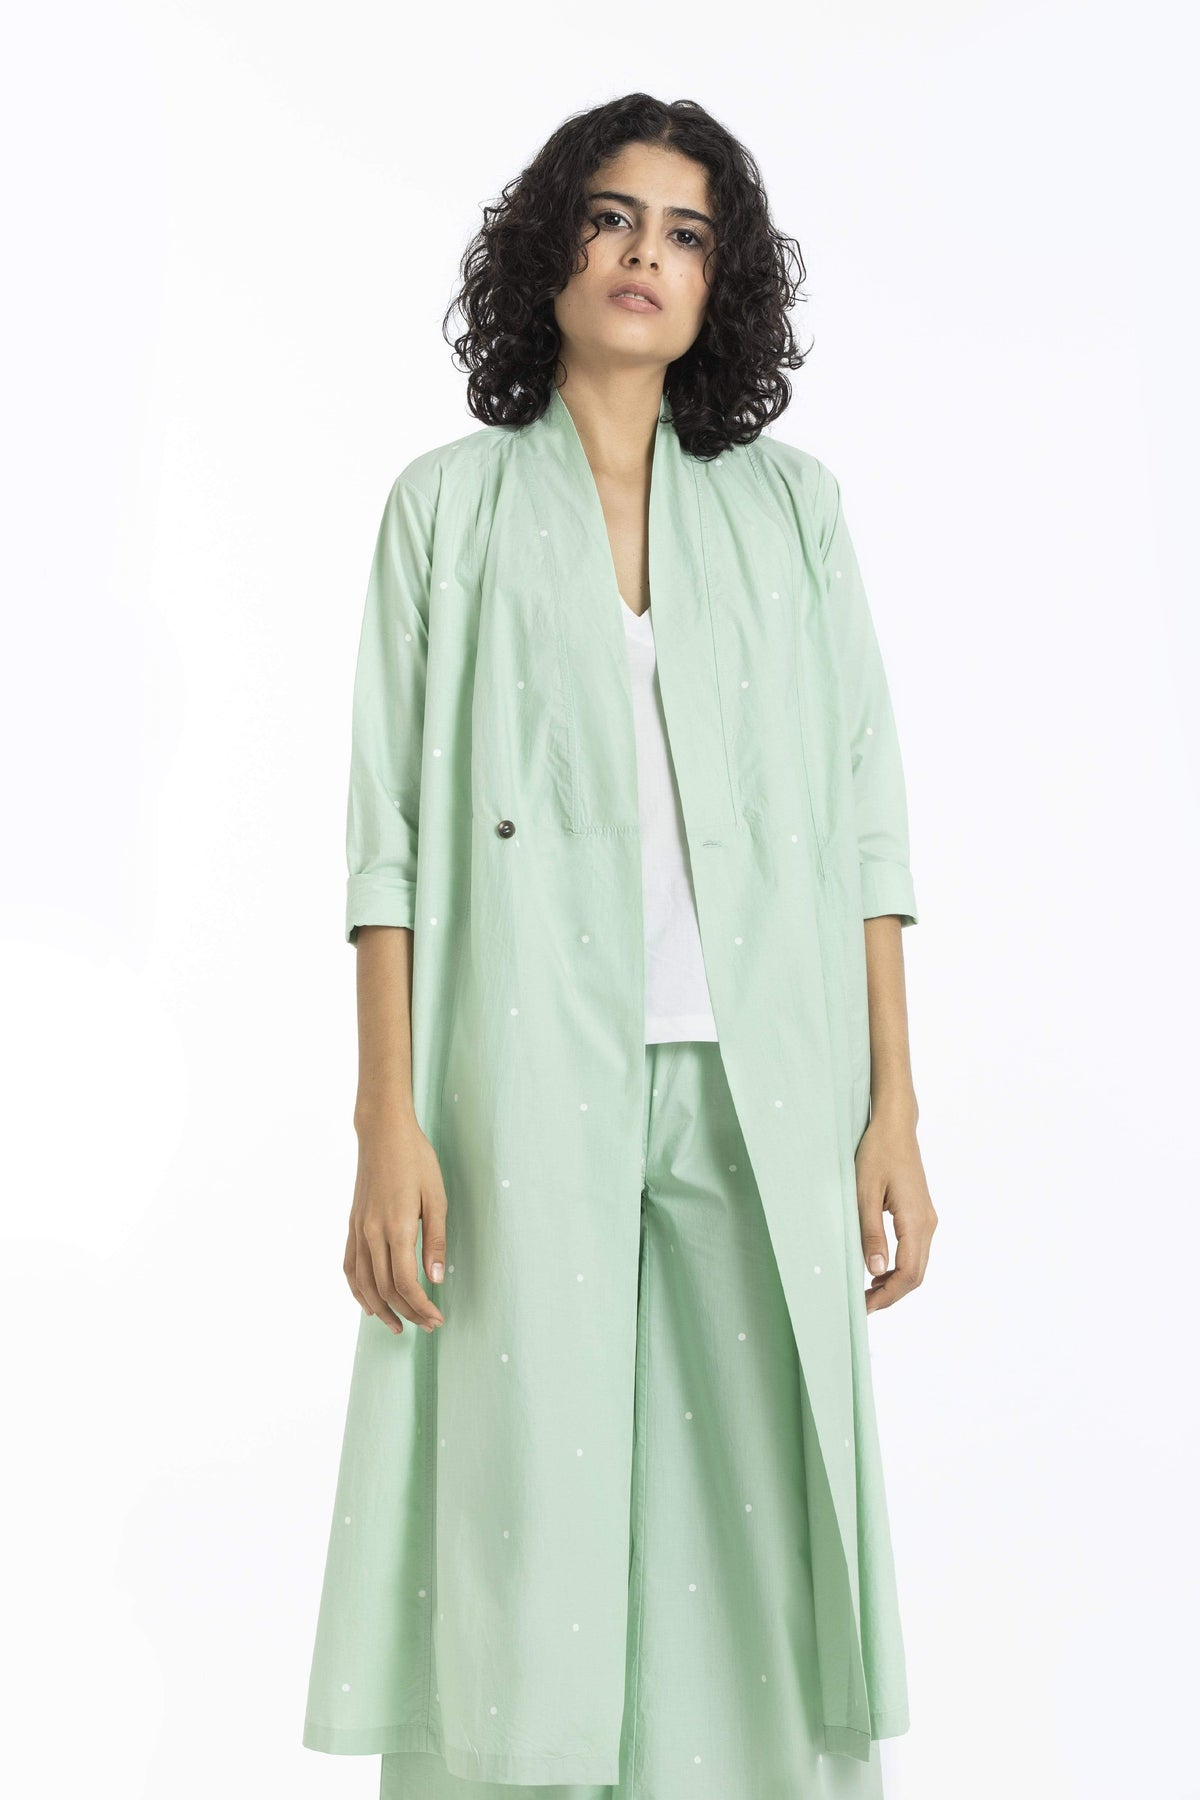 Three Jackets Pure cotton poplin mint jacket